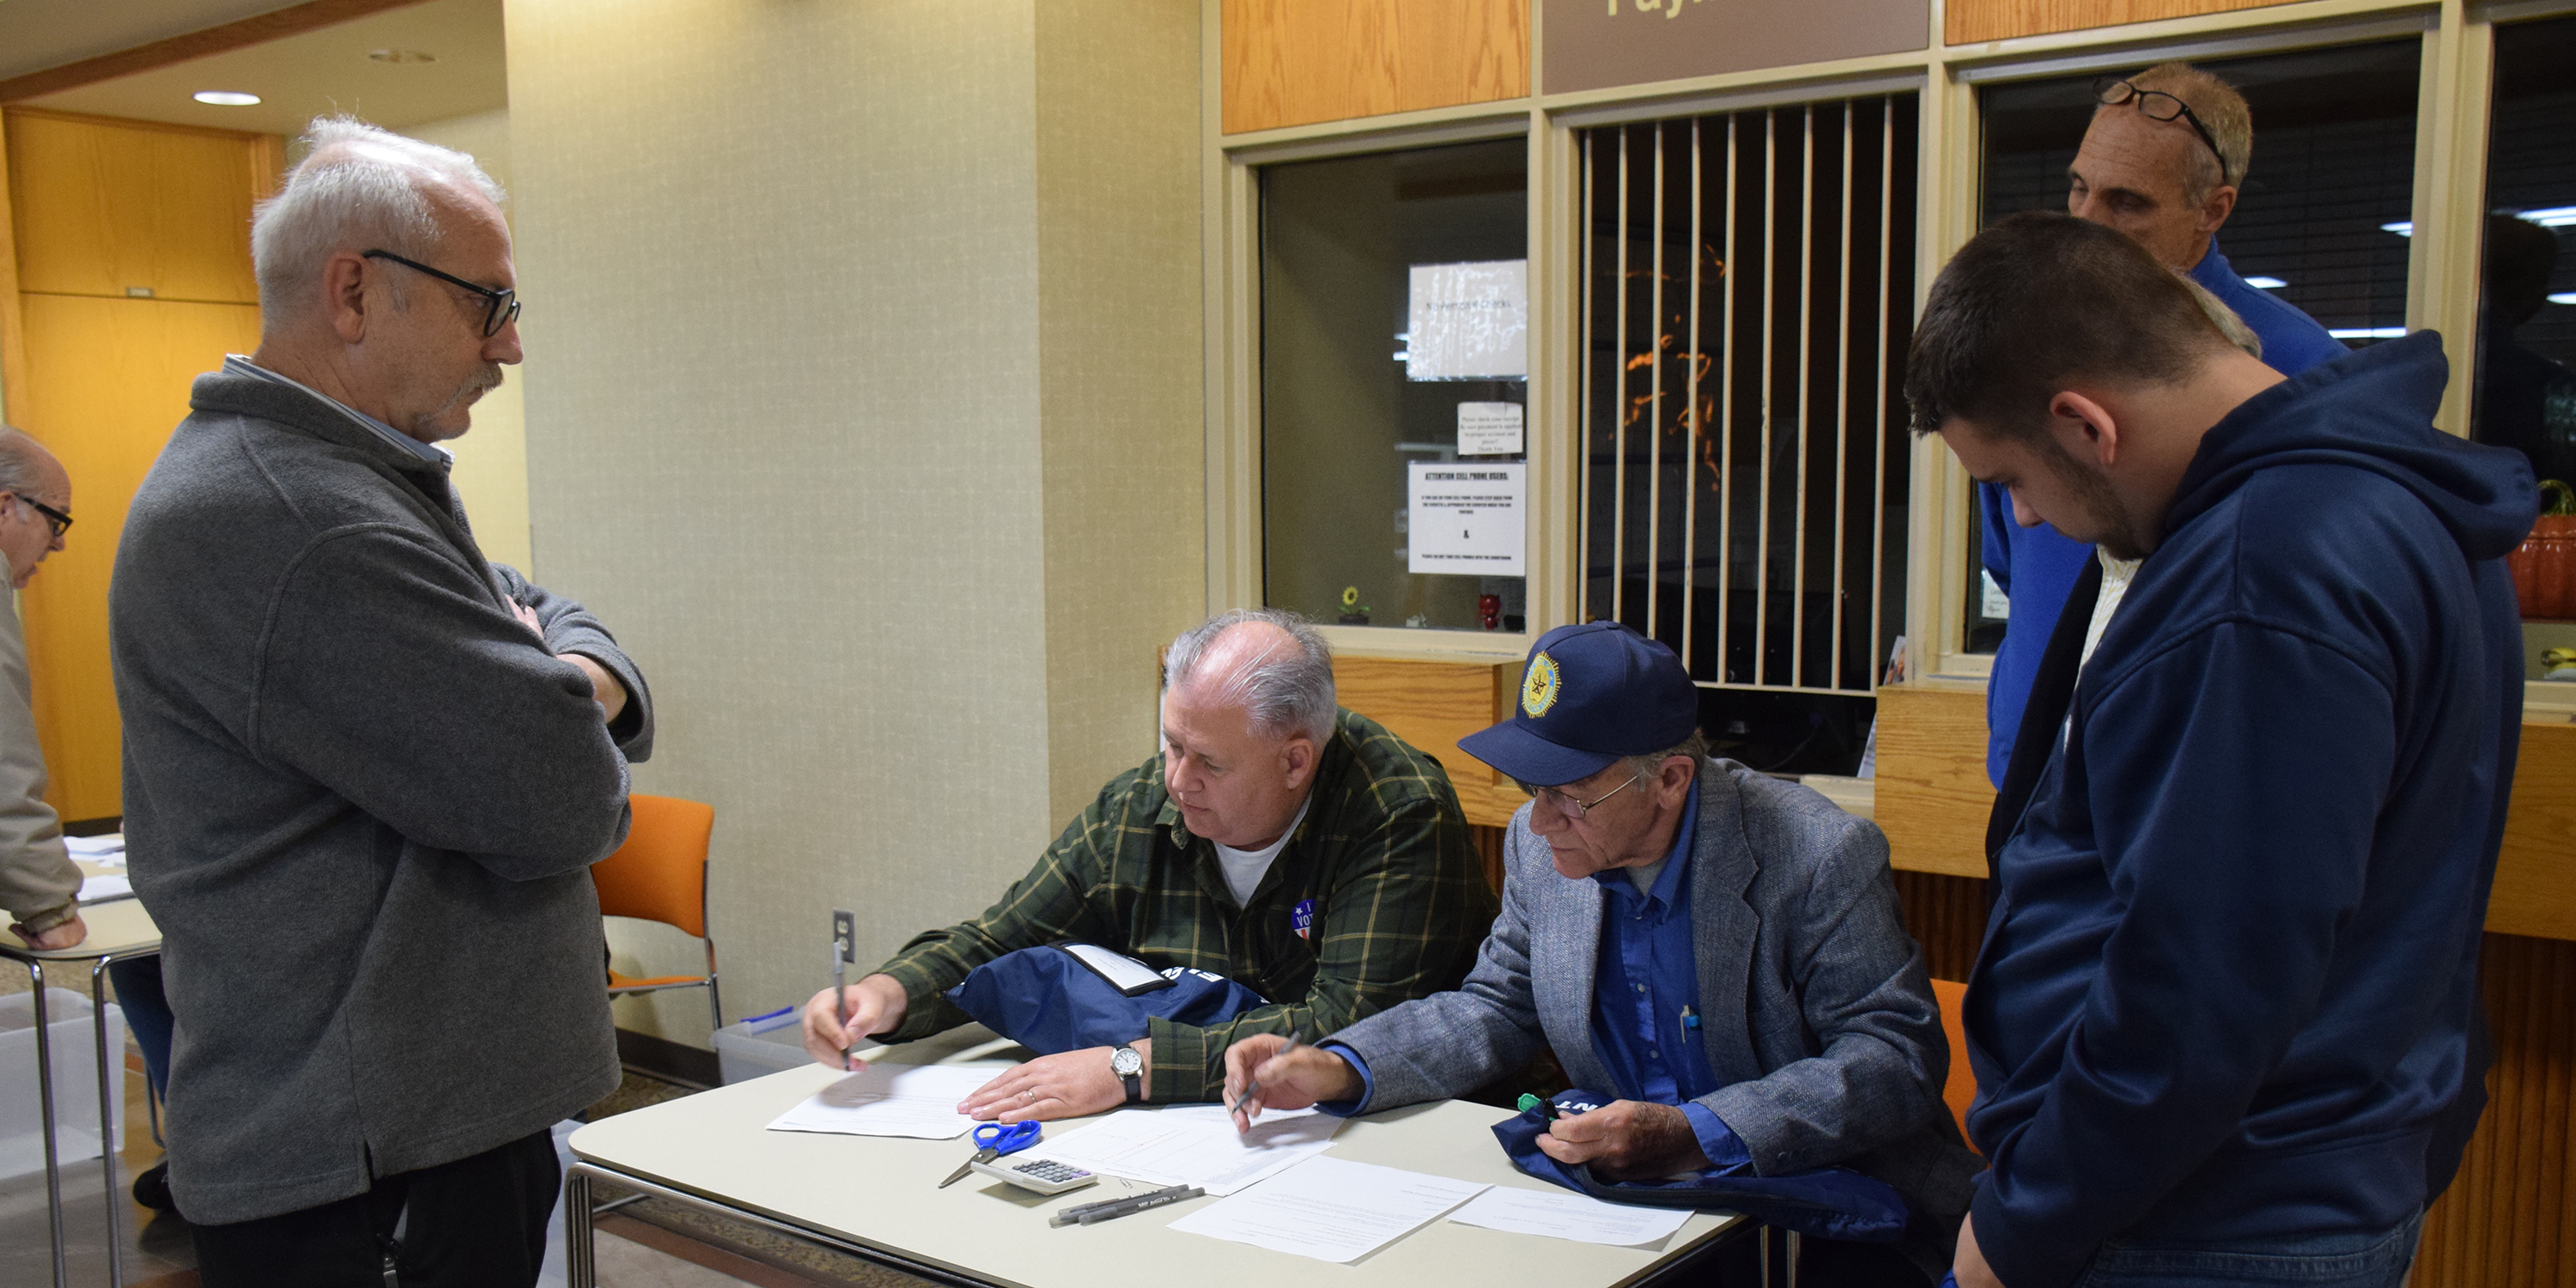 The first ballots were recorded from Warsaw 4-2, the Kosciusko County Annex Building around 6:22 p.m.